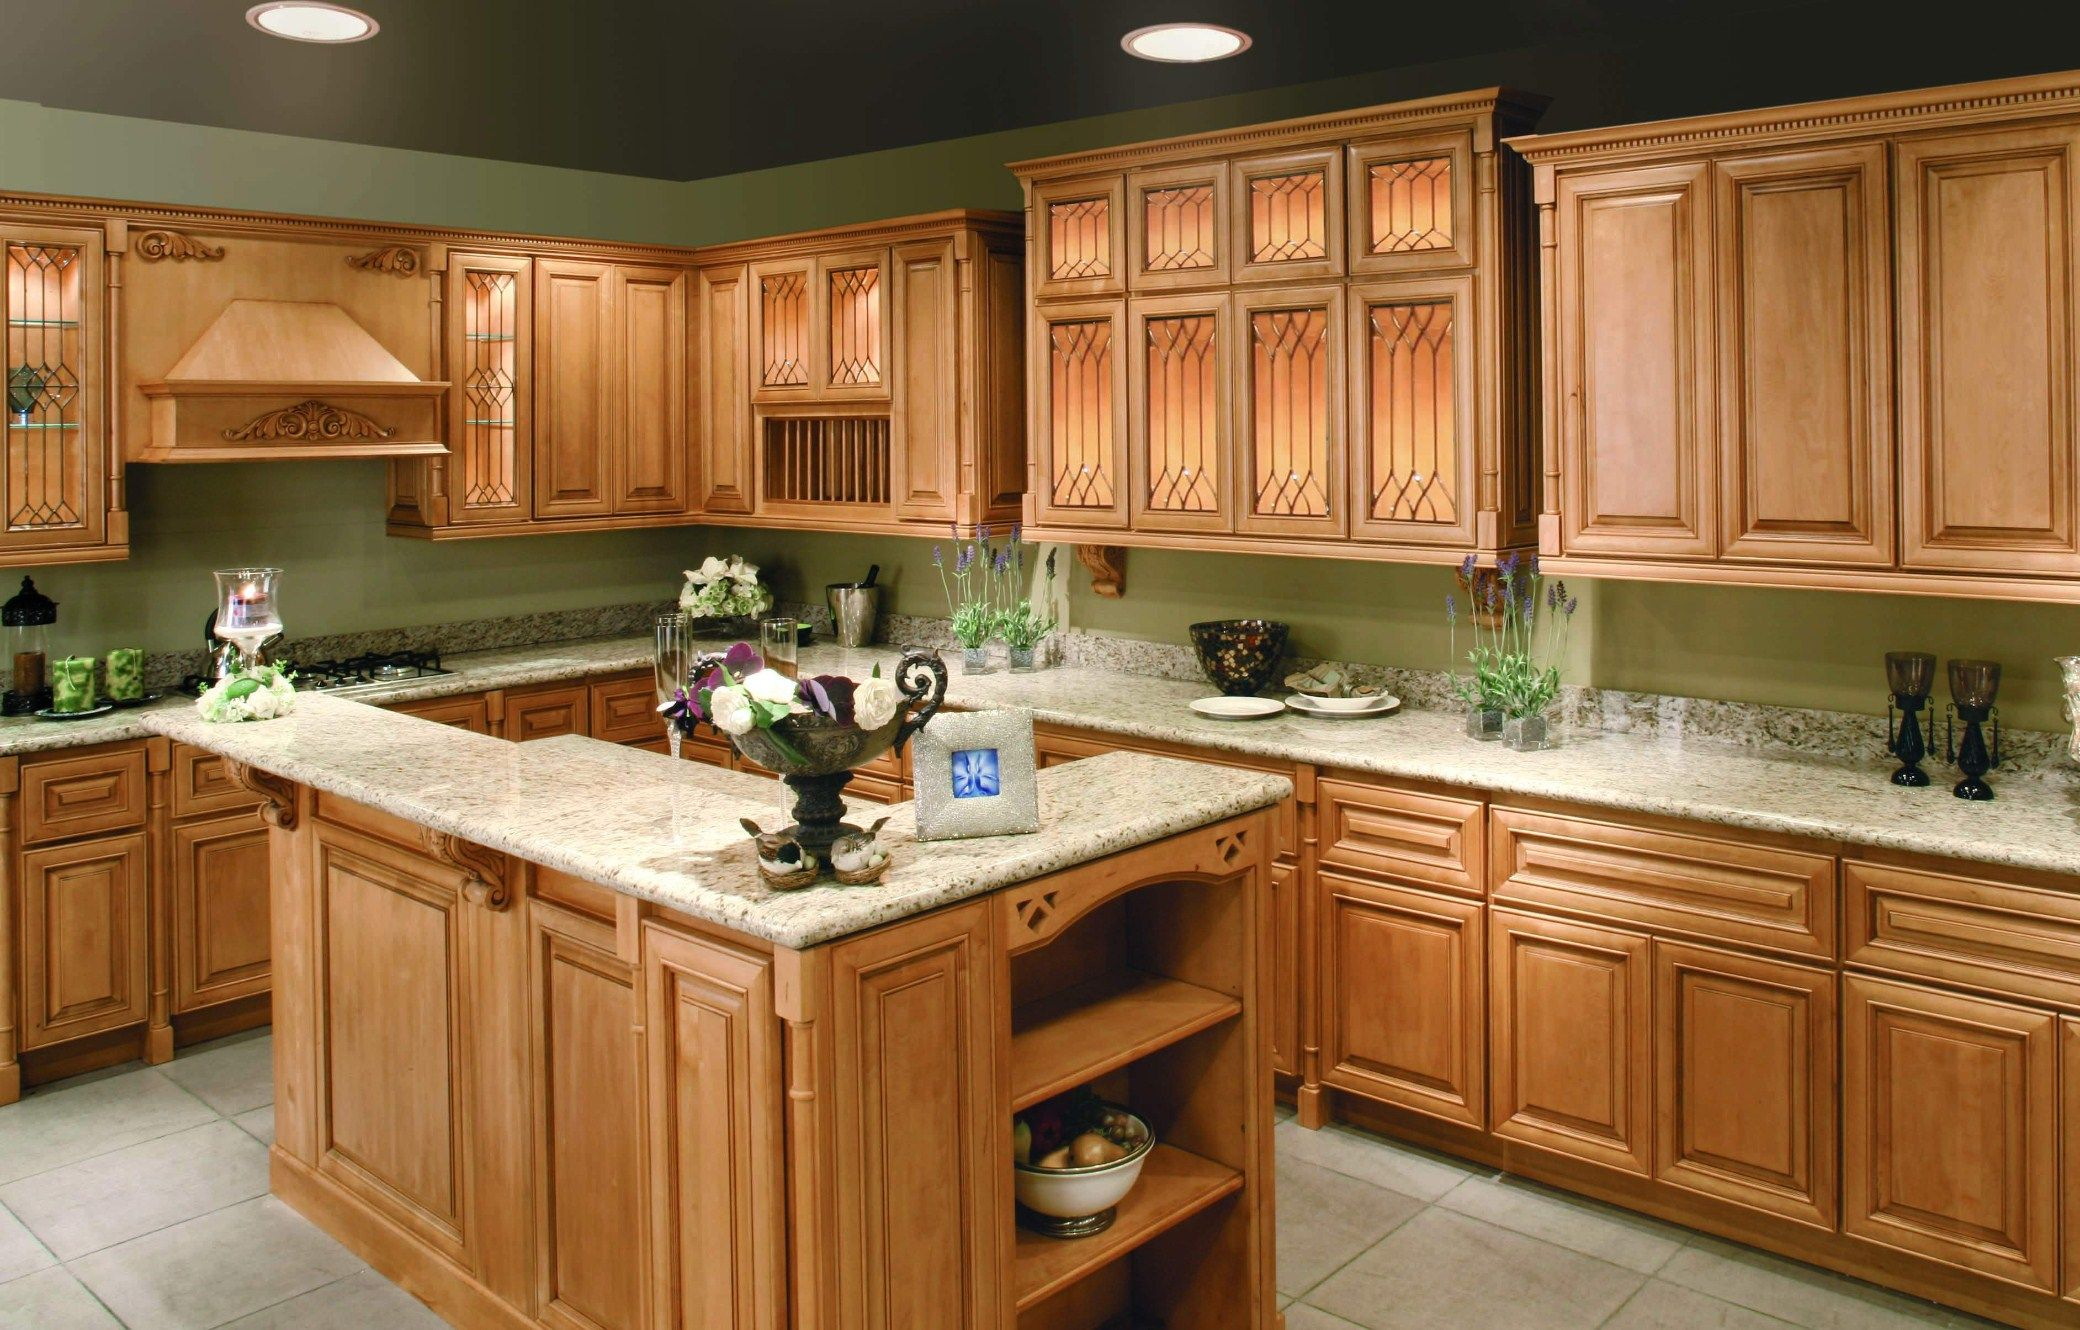 kitchen countertops prices Kitchen Quartz Countertops With Oak Cabinets Cabinets With White Quartz